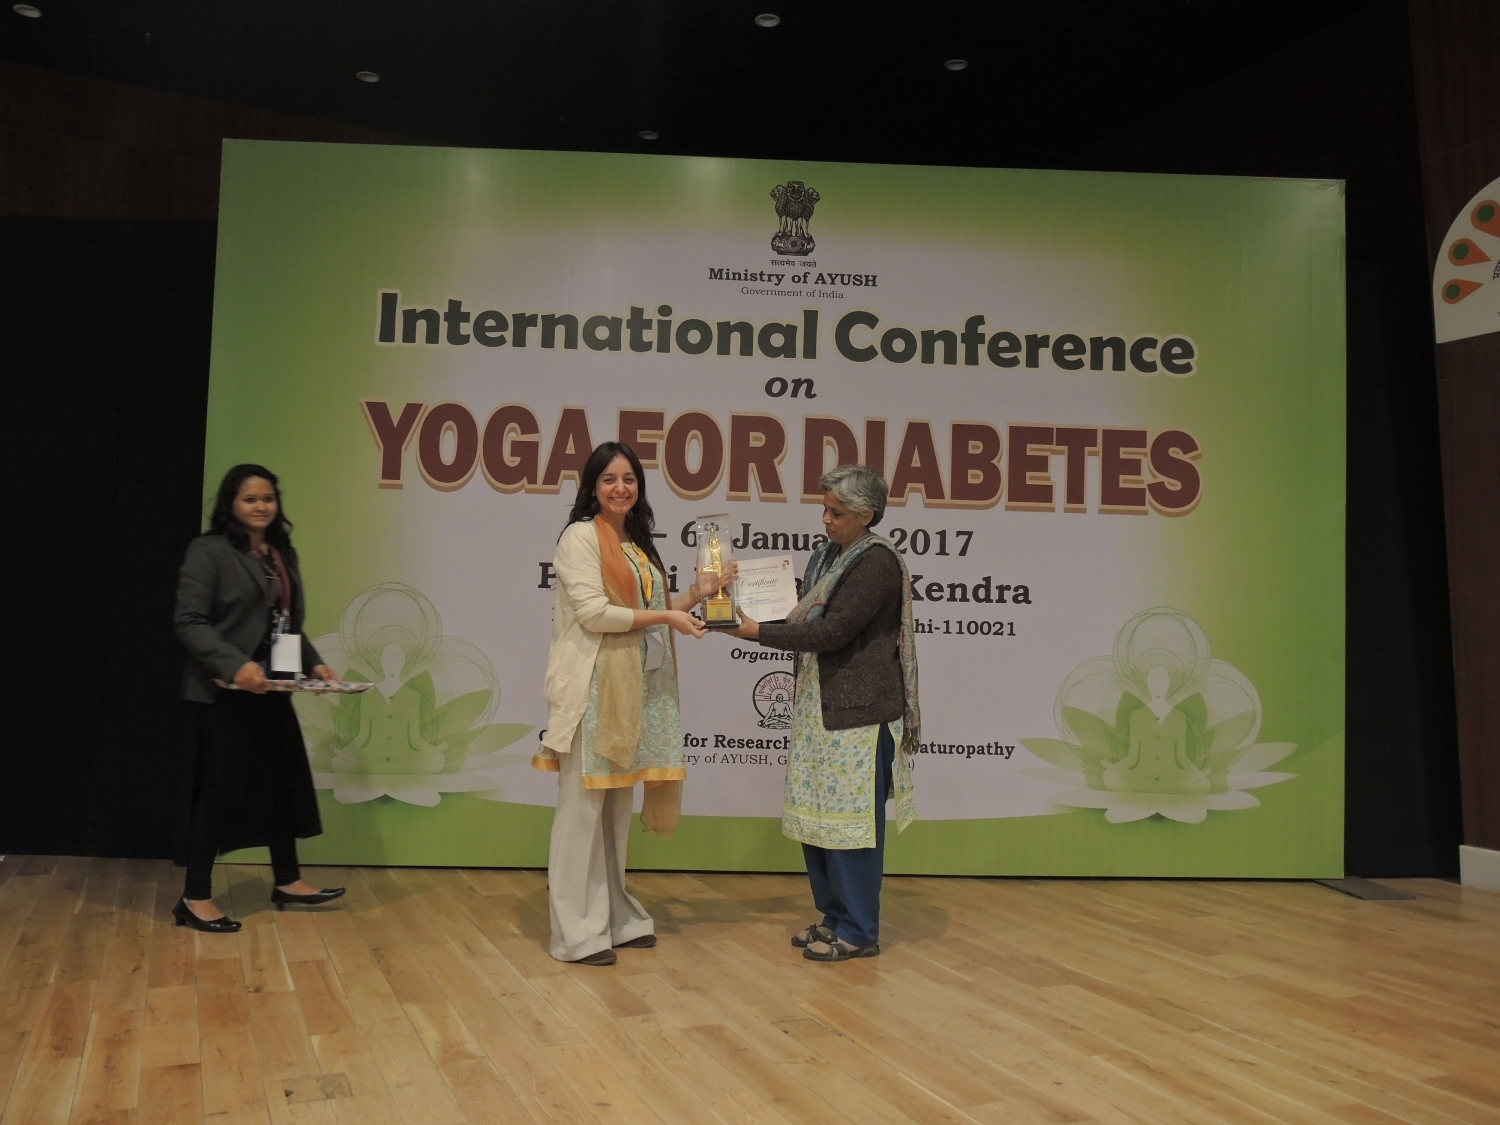 International Conference on Yoga and Diabetes - India, Dillí - 2017, January - Central Council for Research in Yoga & Naturopathy